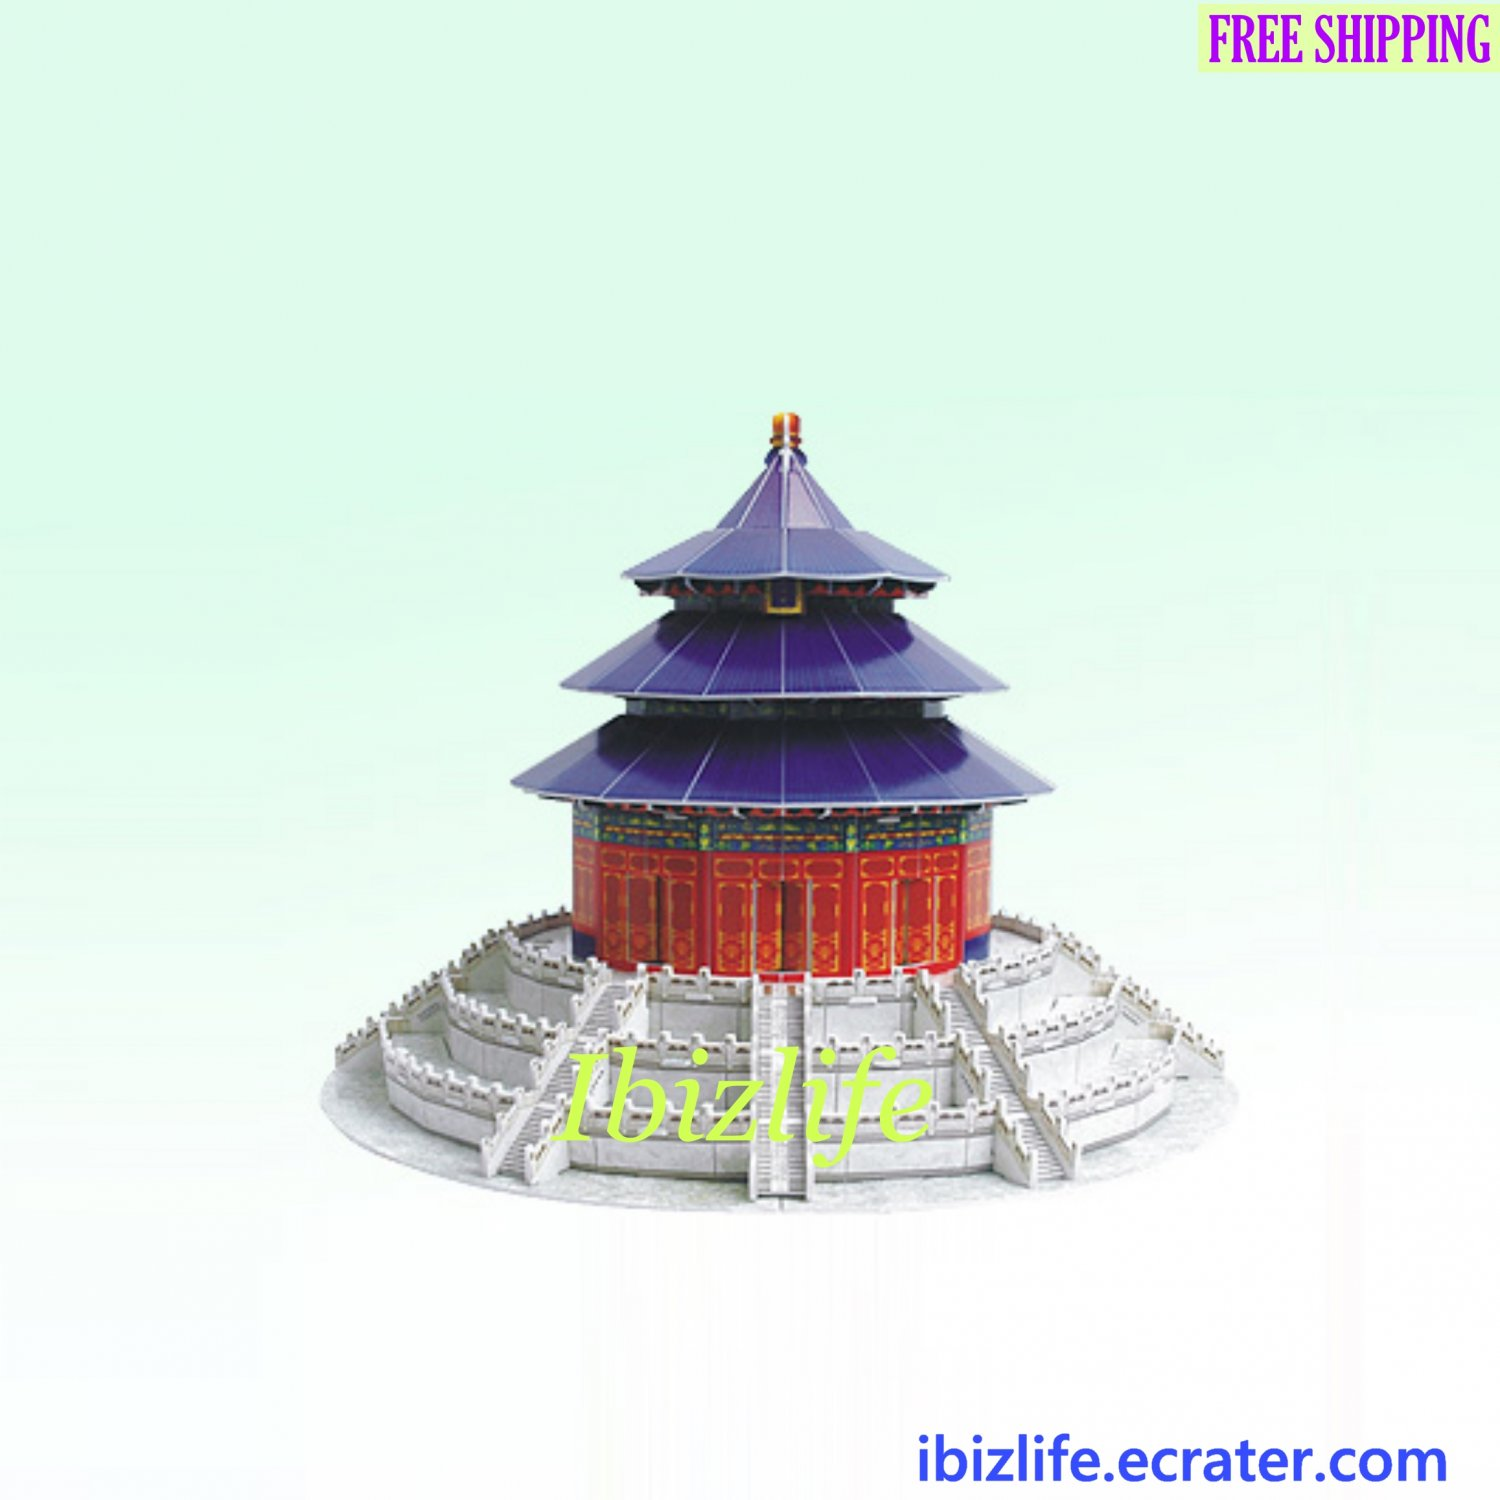 The temple of Heaven (China) - 3D Puzzle 115 pcs DIY Jigsaw model as gift (pc59)